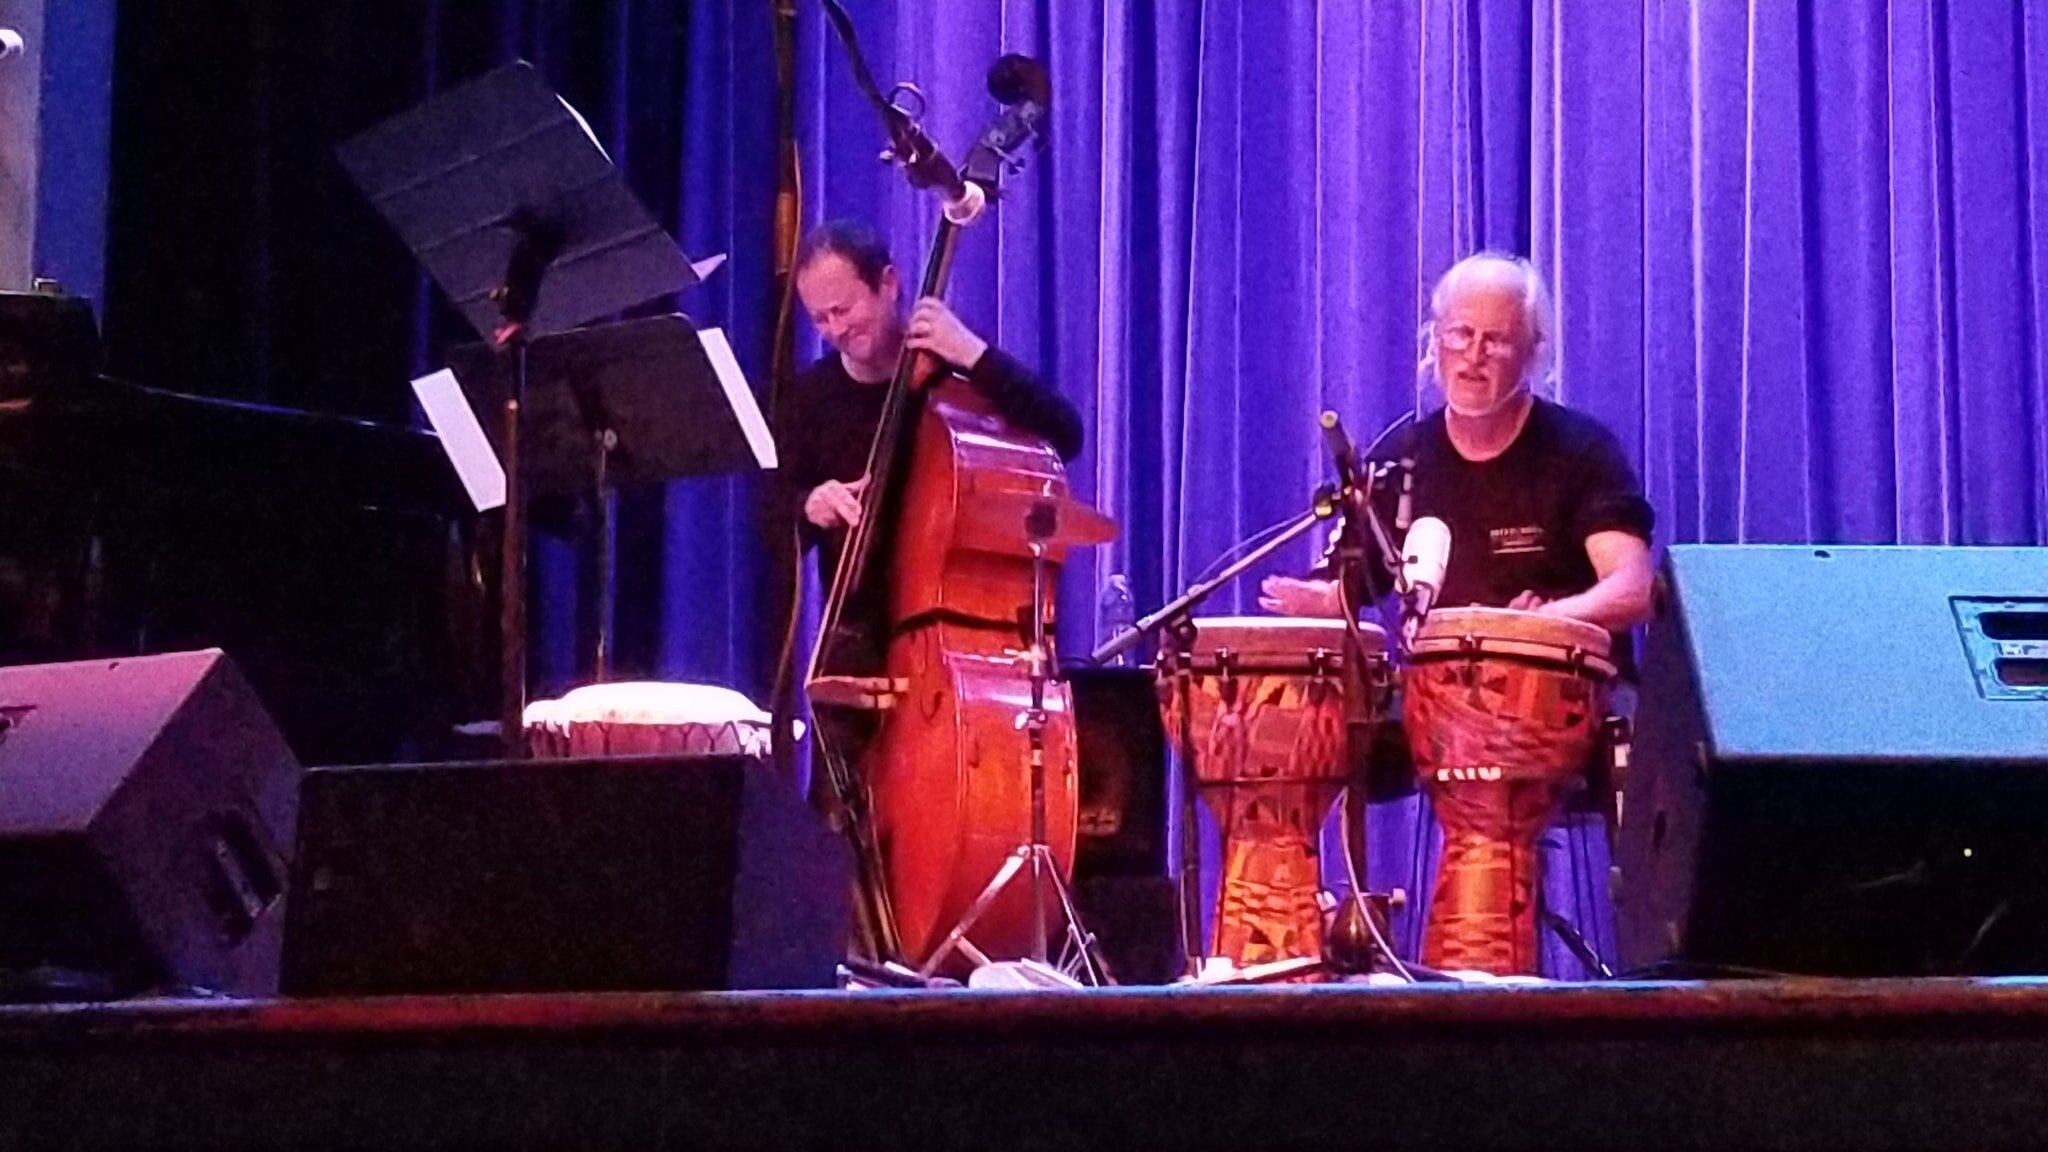 Ian on Djembes & Fred Randolph - Bread & Roses Benefit Concert